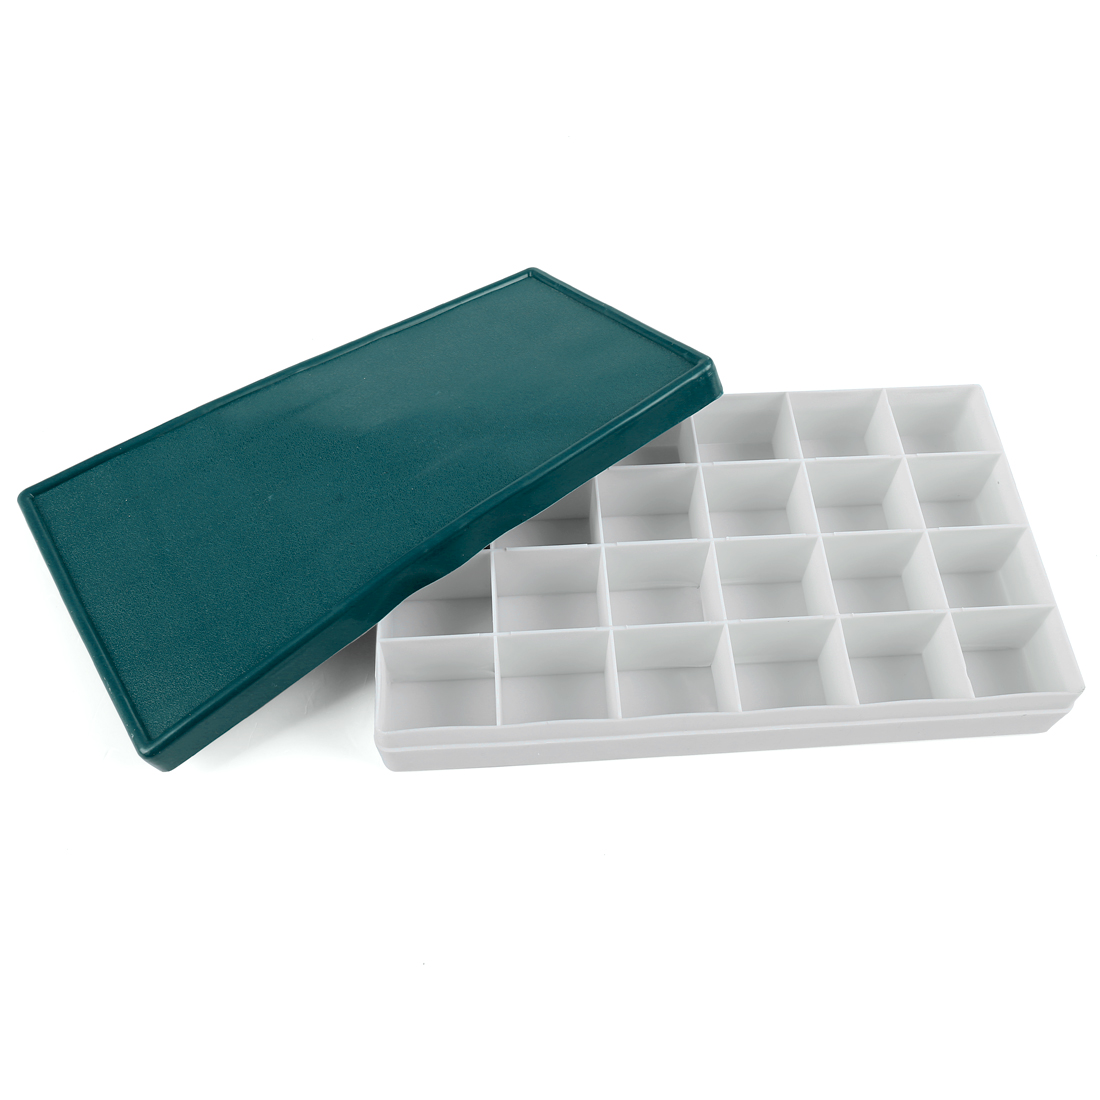 24 Compartments Plastic Storage Case Box White w Dark Green Rubber Cap